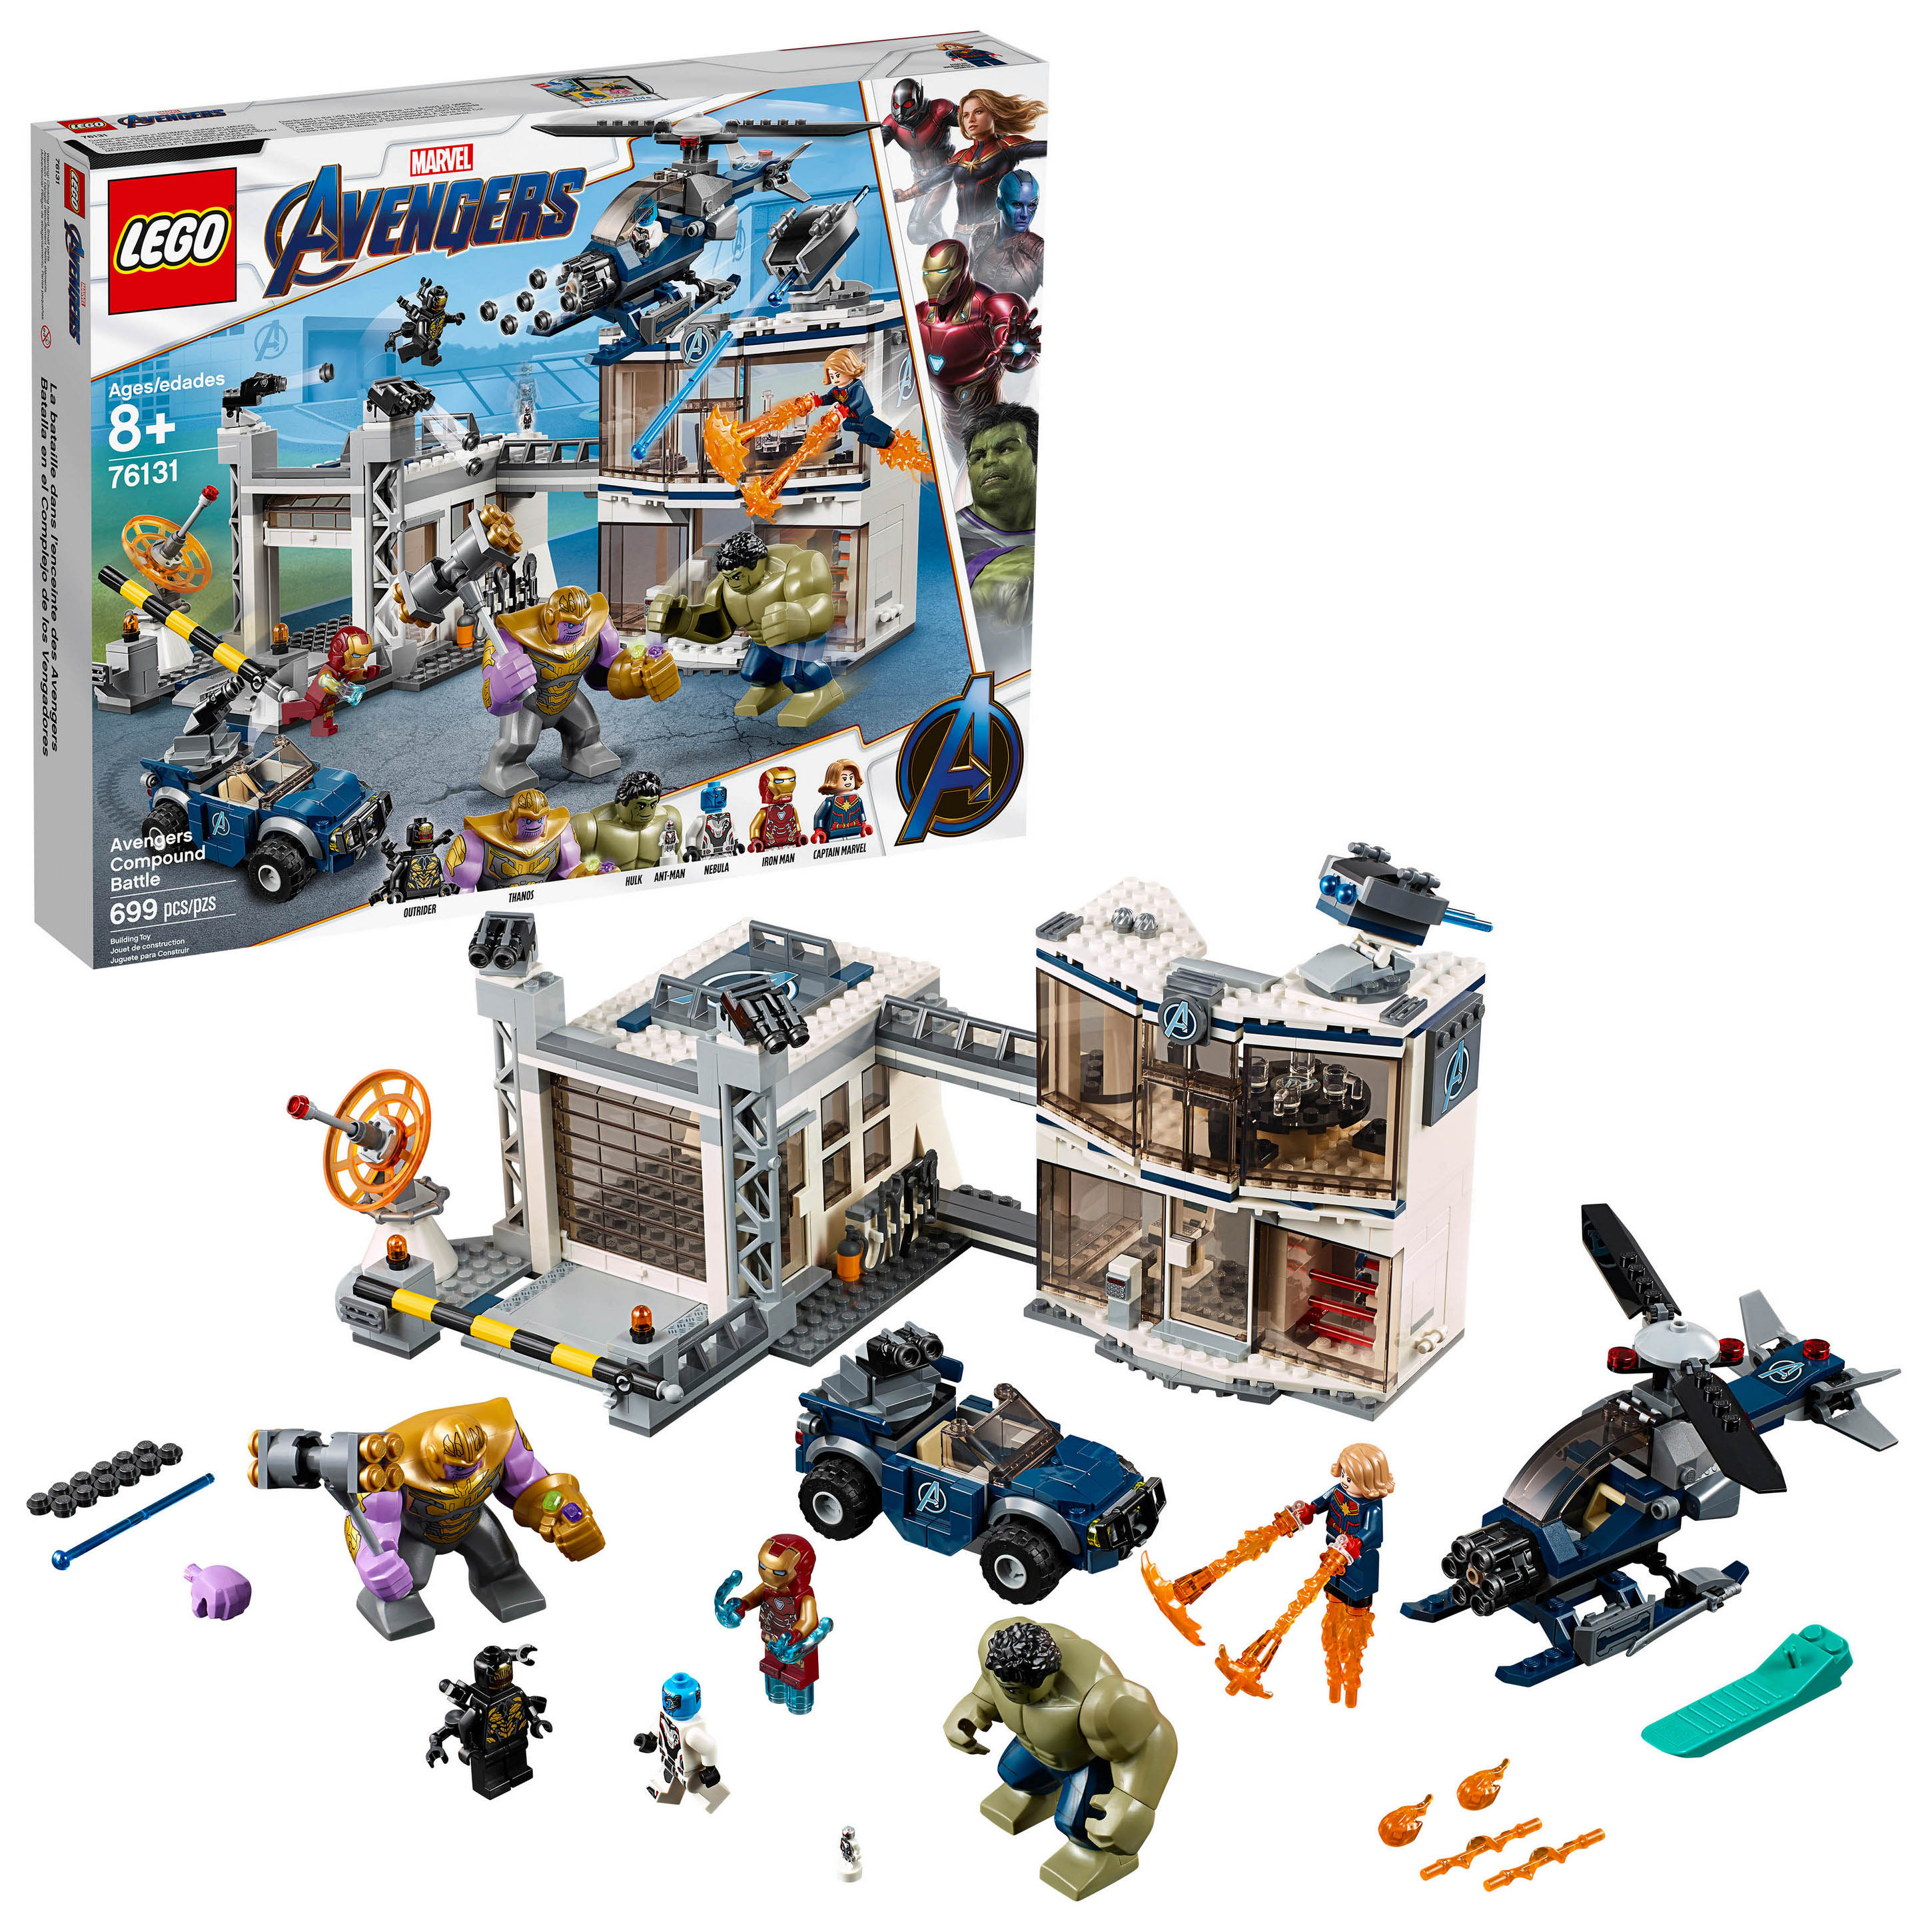 Avengers: Endgame LEGO Sets Officially Revealed - The Toyark - News